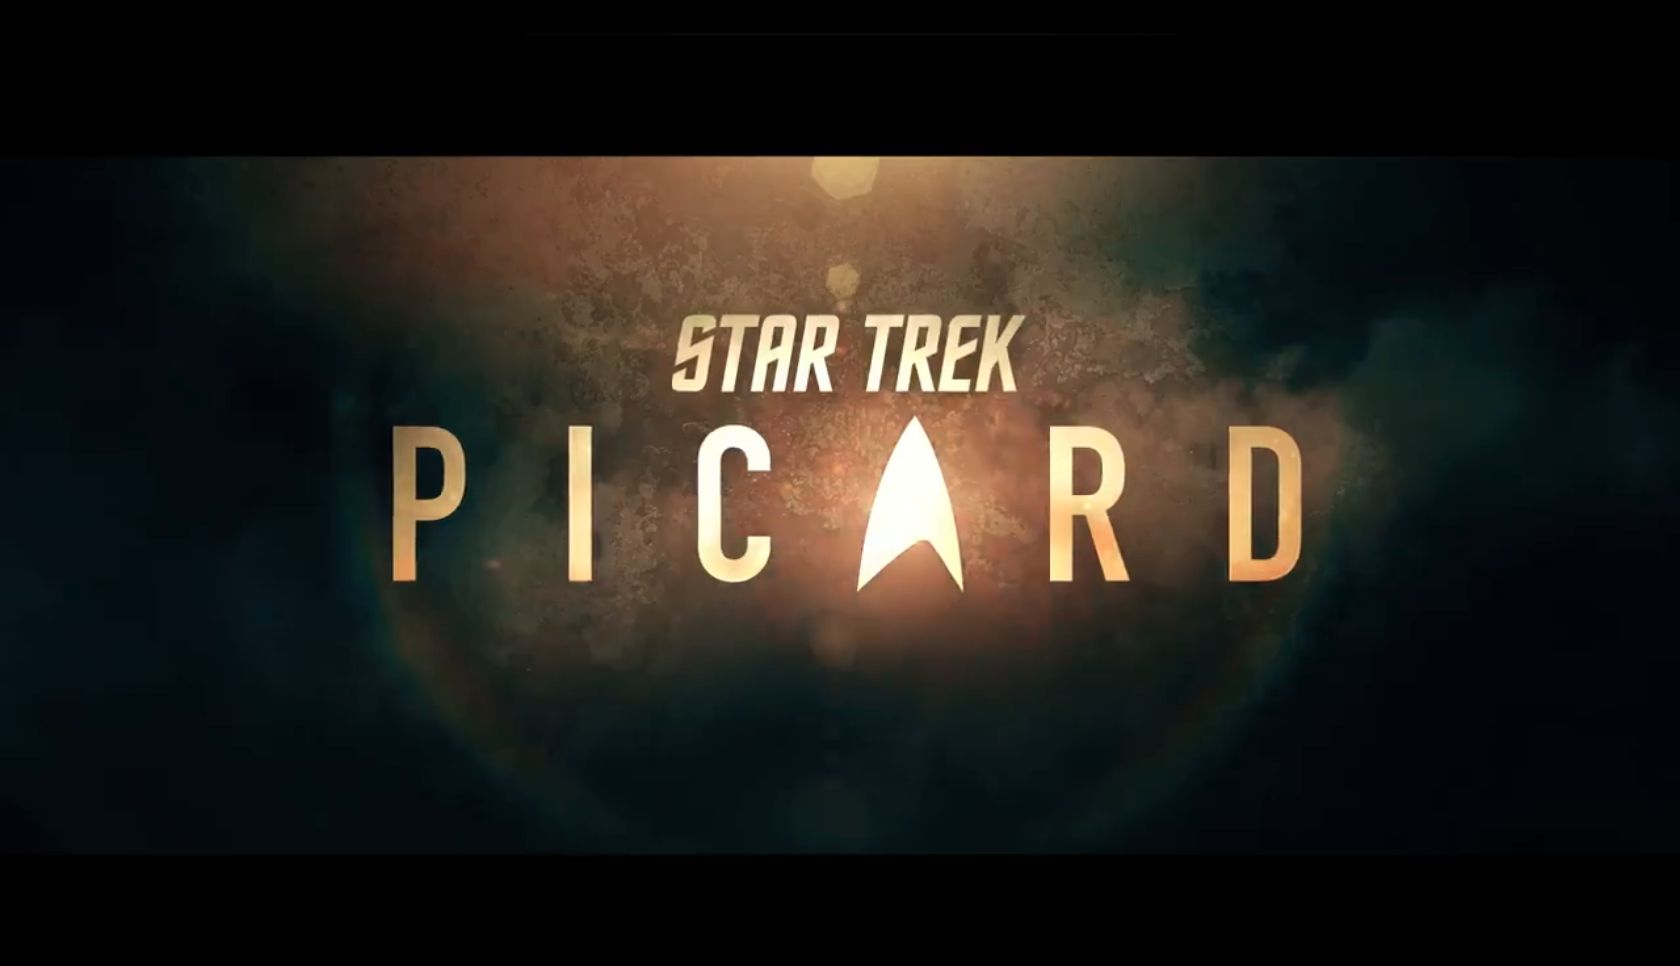 CBS All Access Announces 'Star Trek: Picard', Actual Final